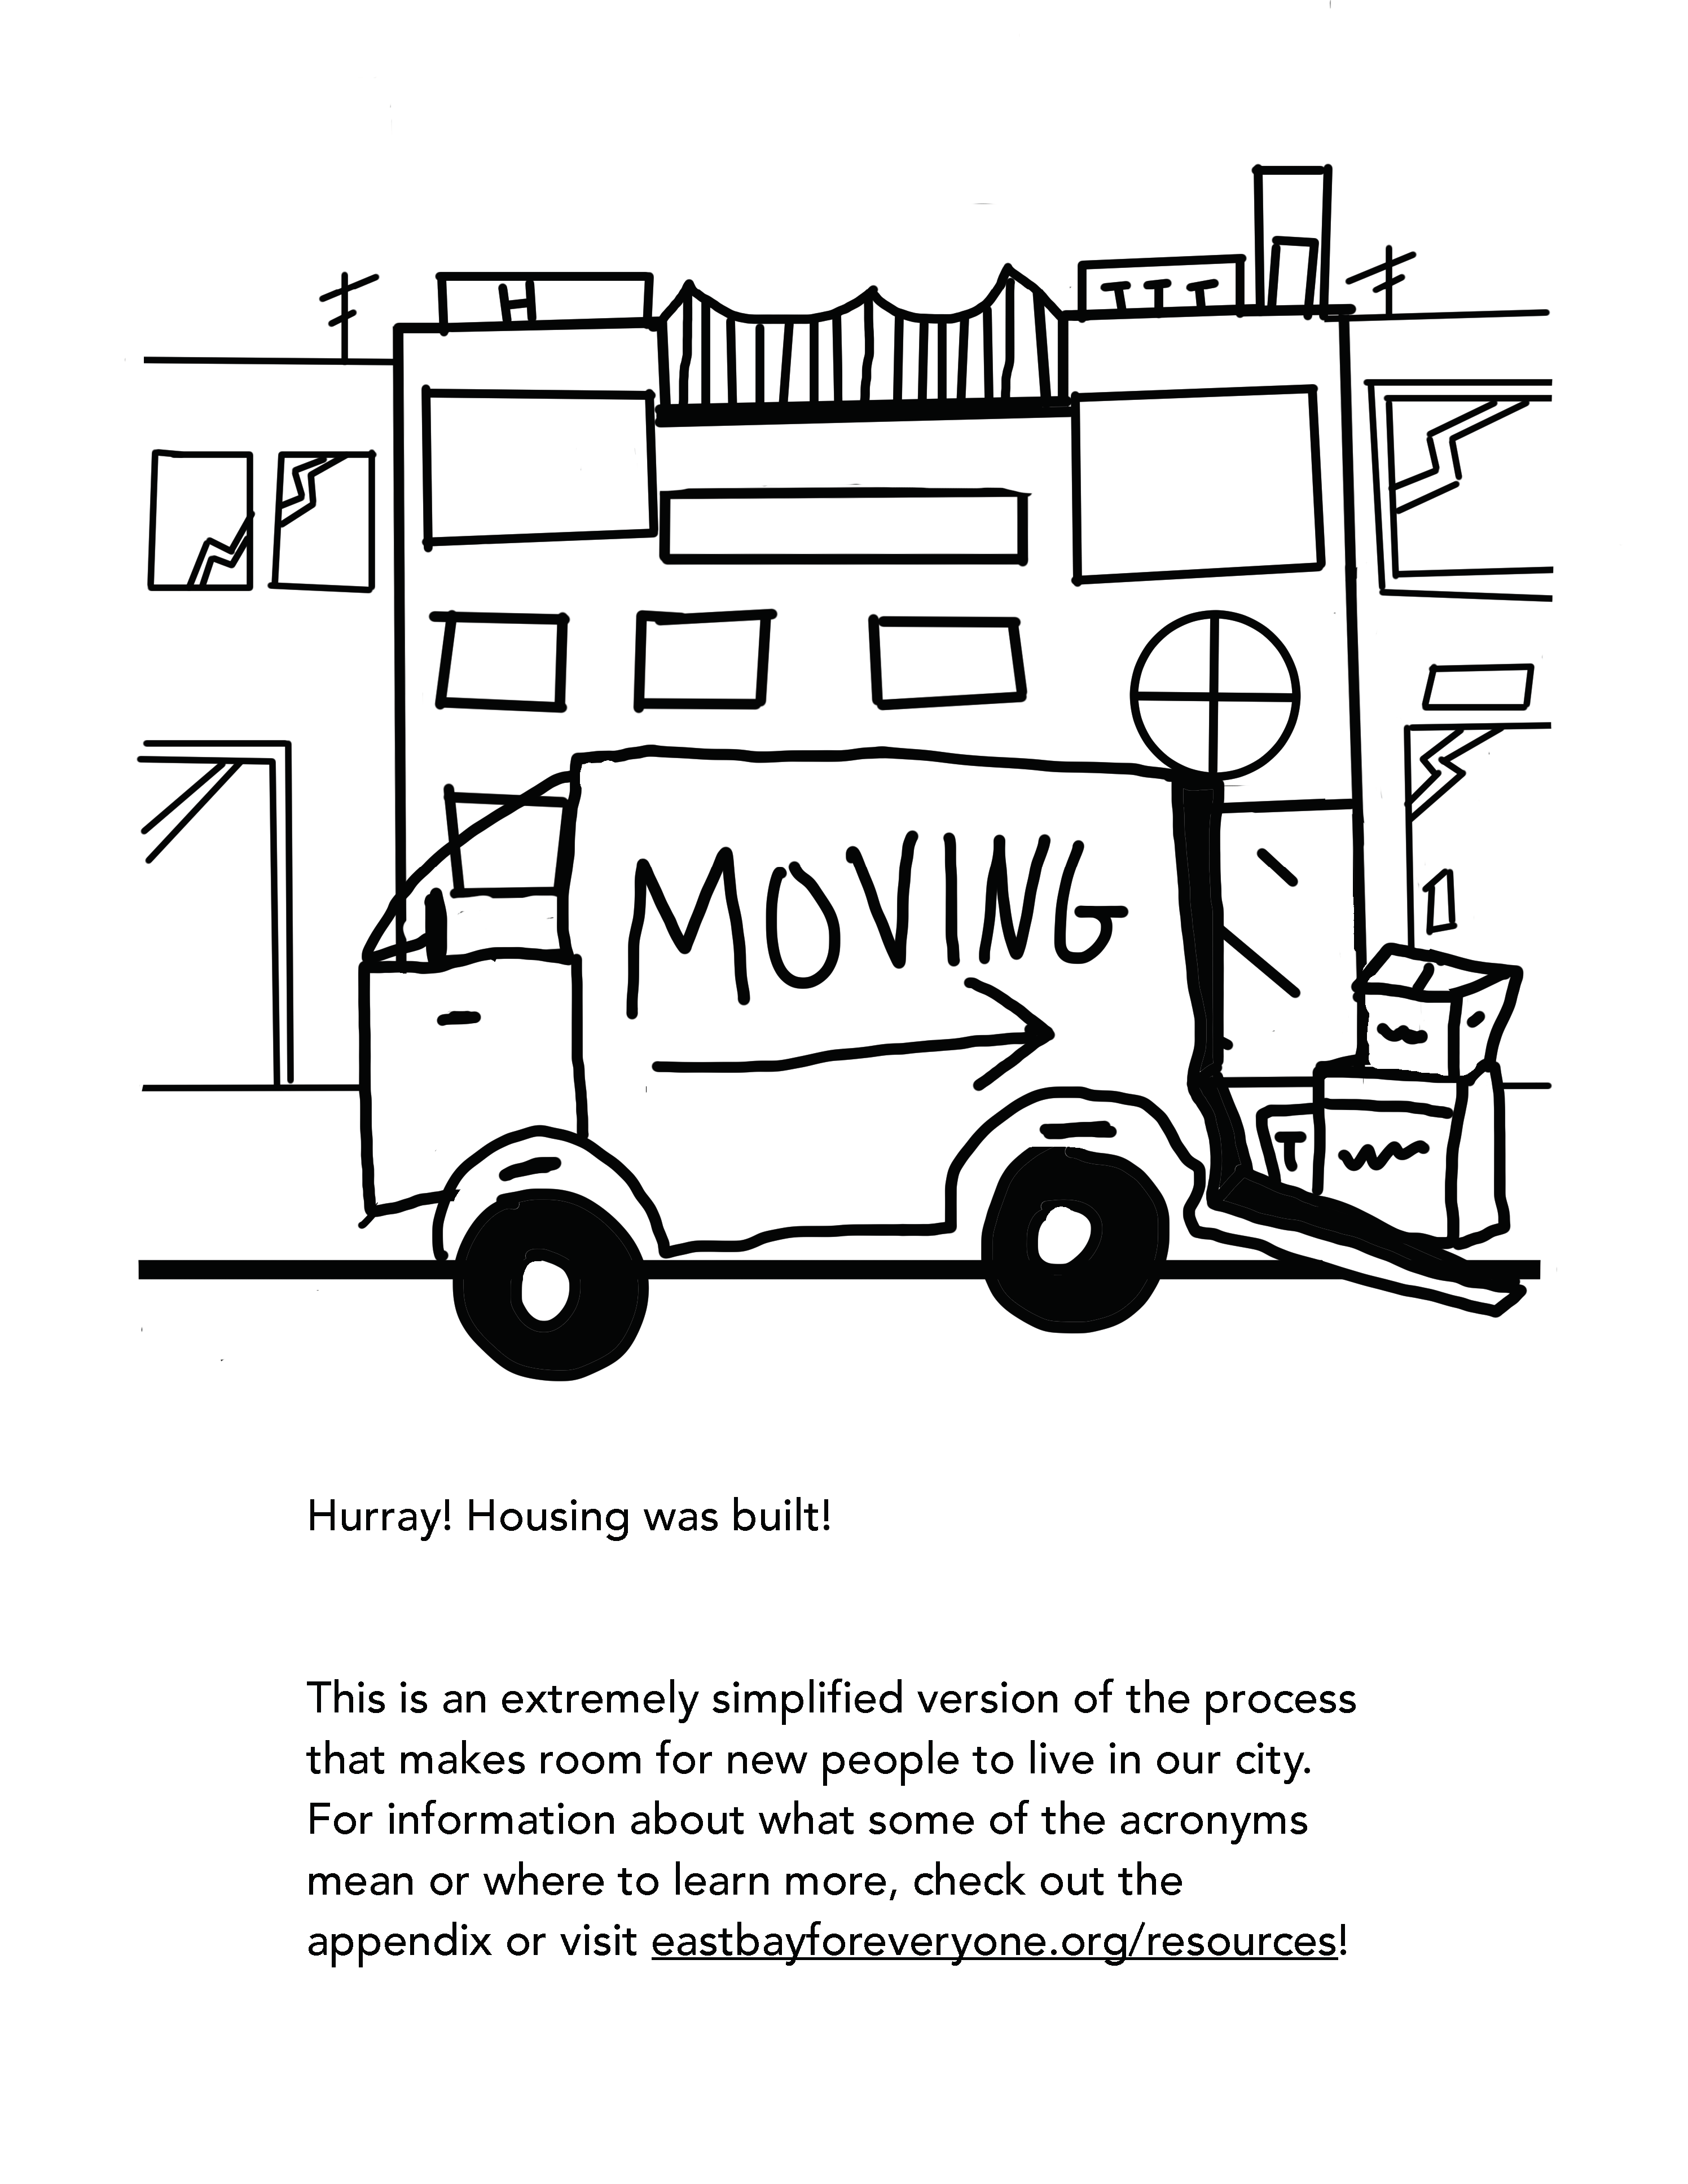 Hurray! Housing was built! This is an extremely simplified version of the process that makes room for new people to live in our city. For information about what some of the acronyms mean or where to learn more, check out the appendix or visit eastbayforeveryone.org/resources!